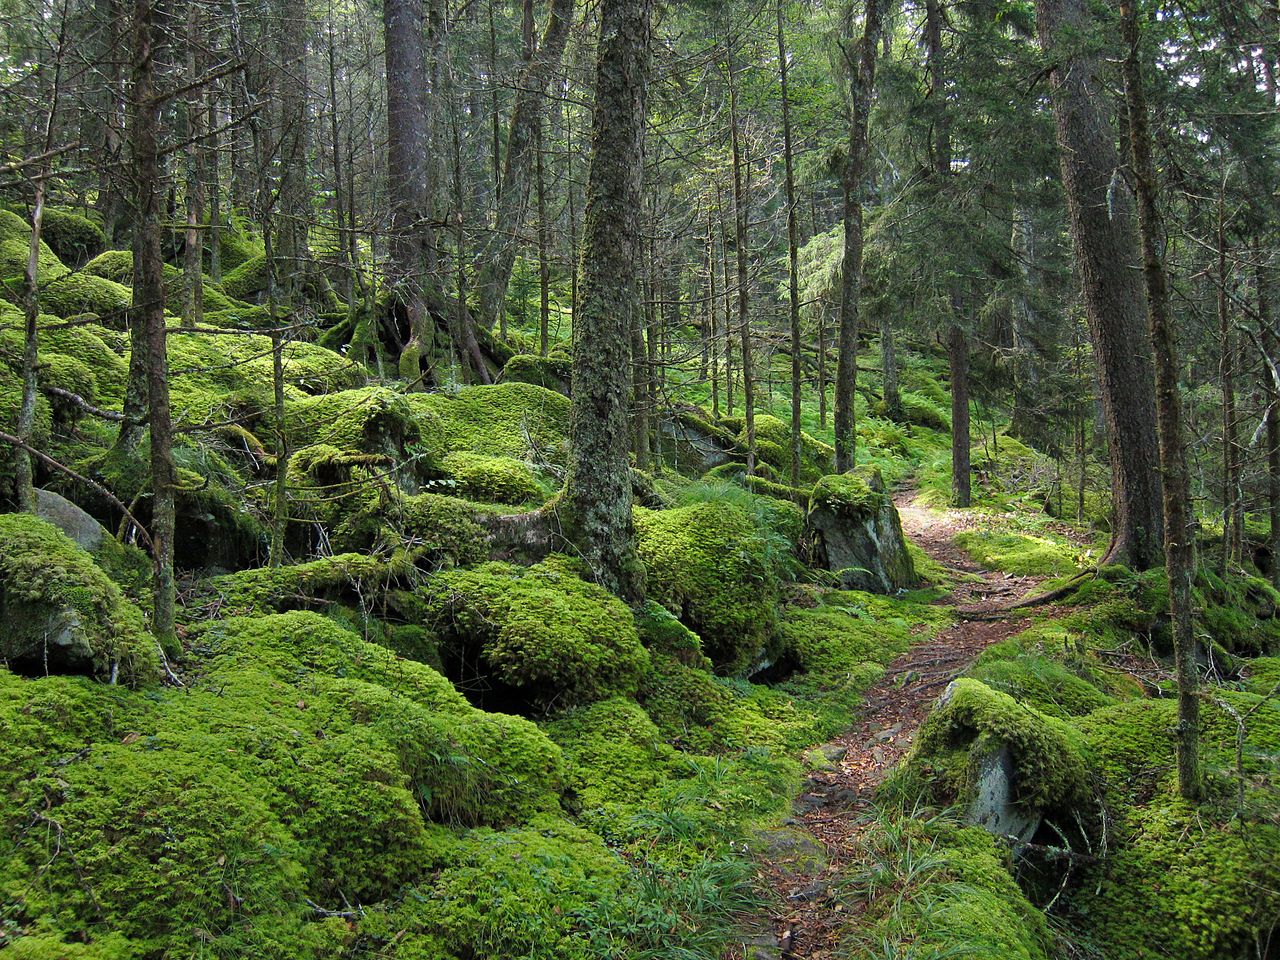 The Appalachian temperate rainforest is a unique environment dominated by evergreens, mosses, and unique fauna. As our region gets wetter in the coming decades, we hope to create a facsimile of this type of forest.